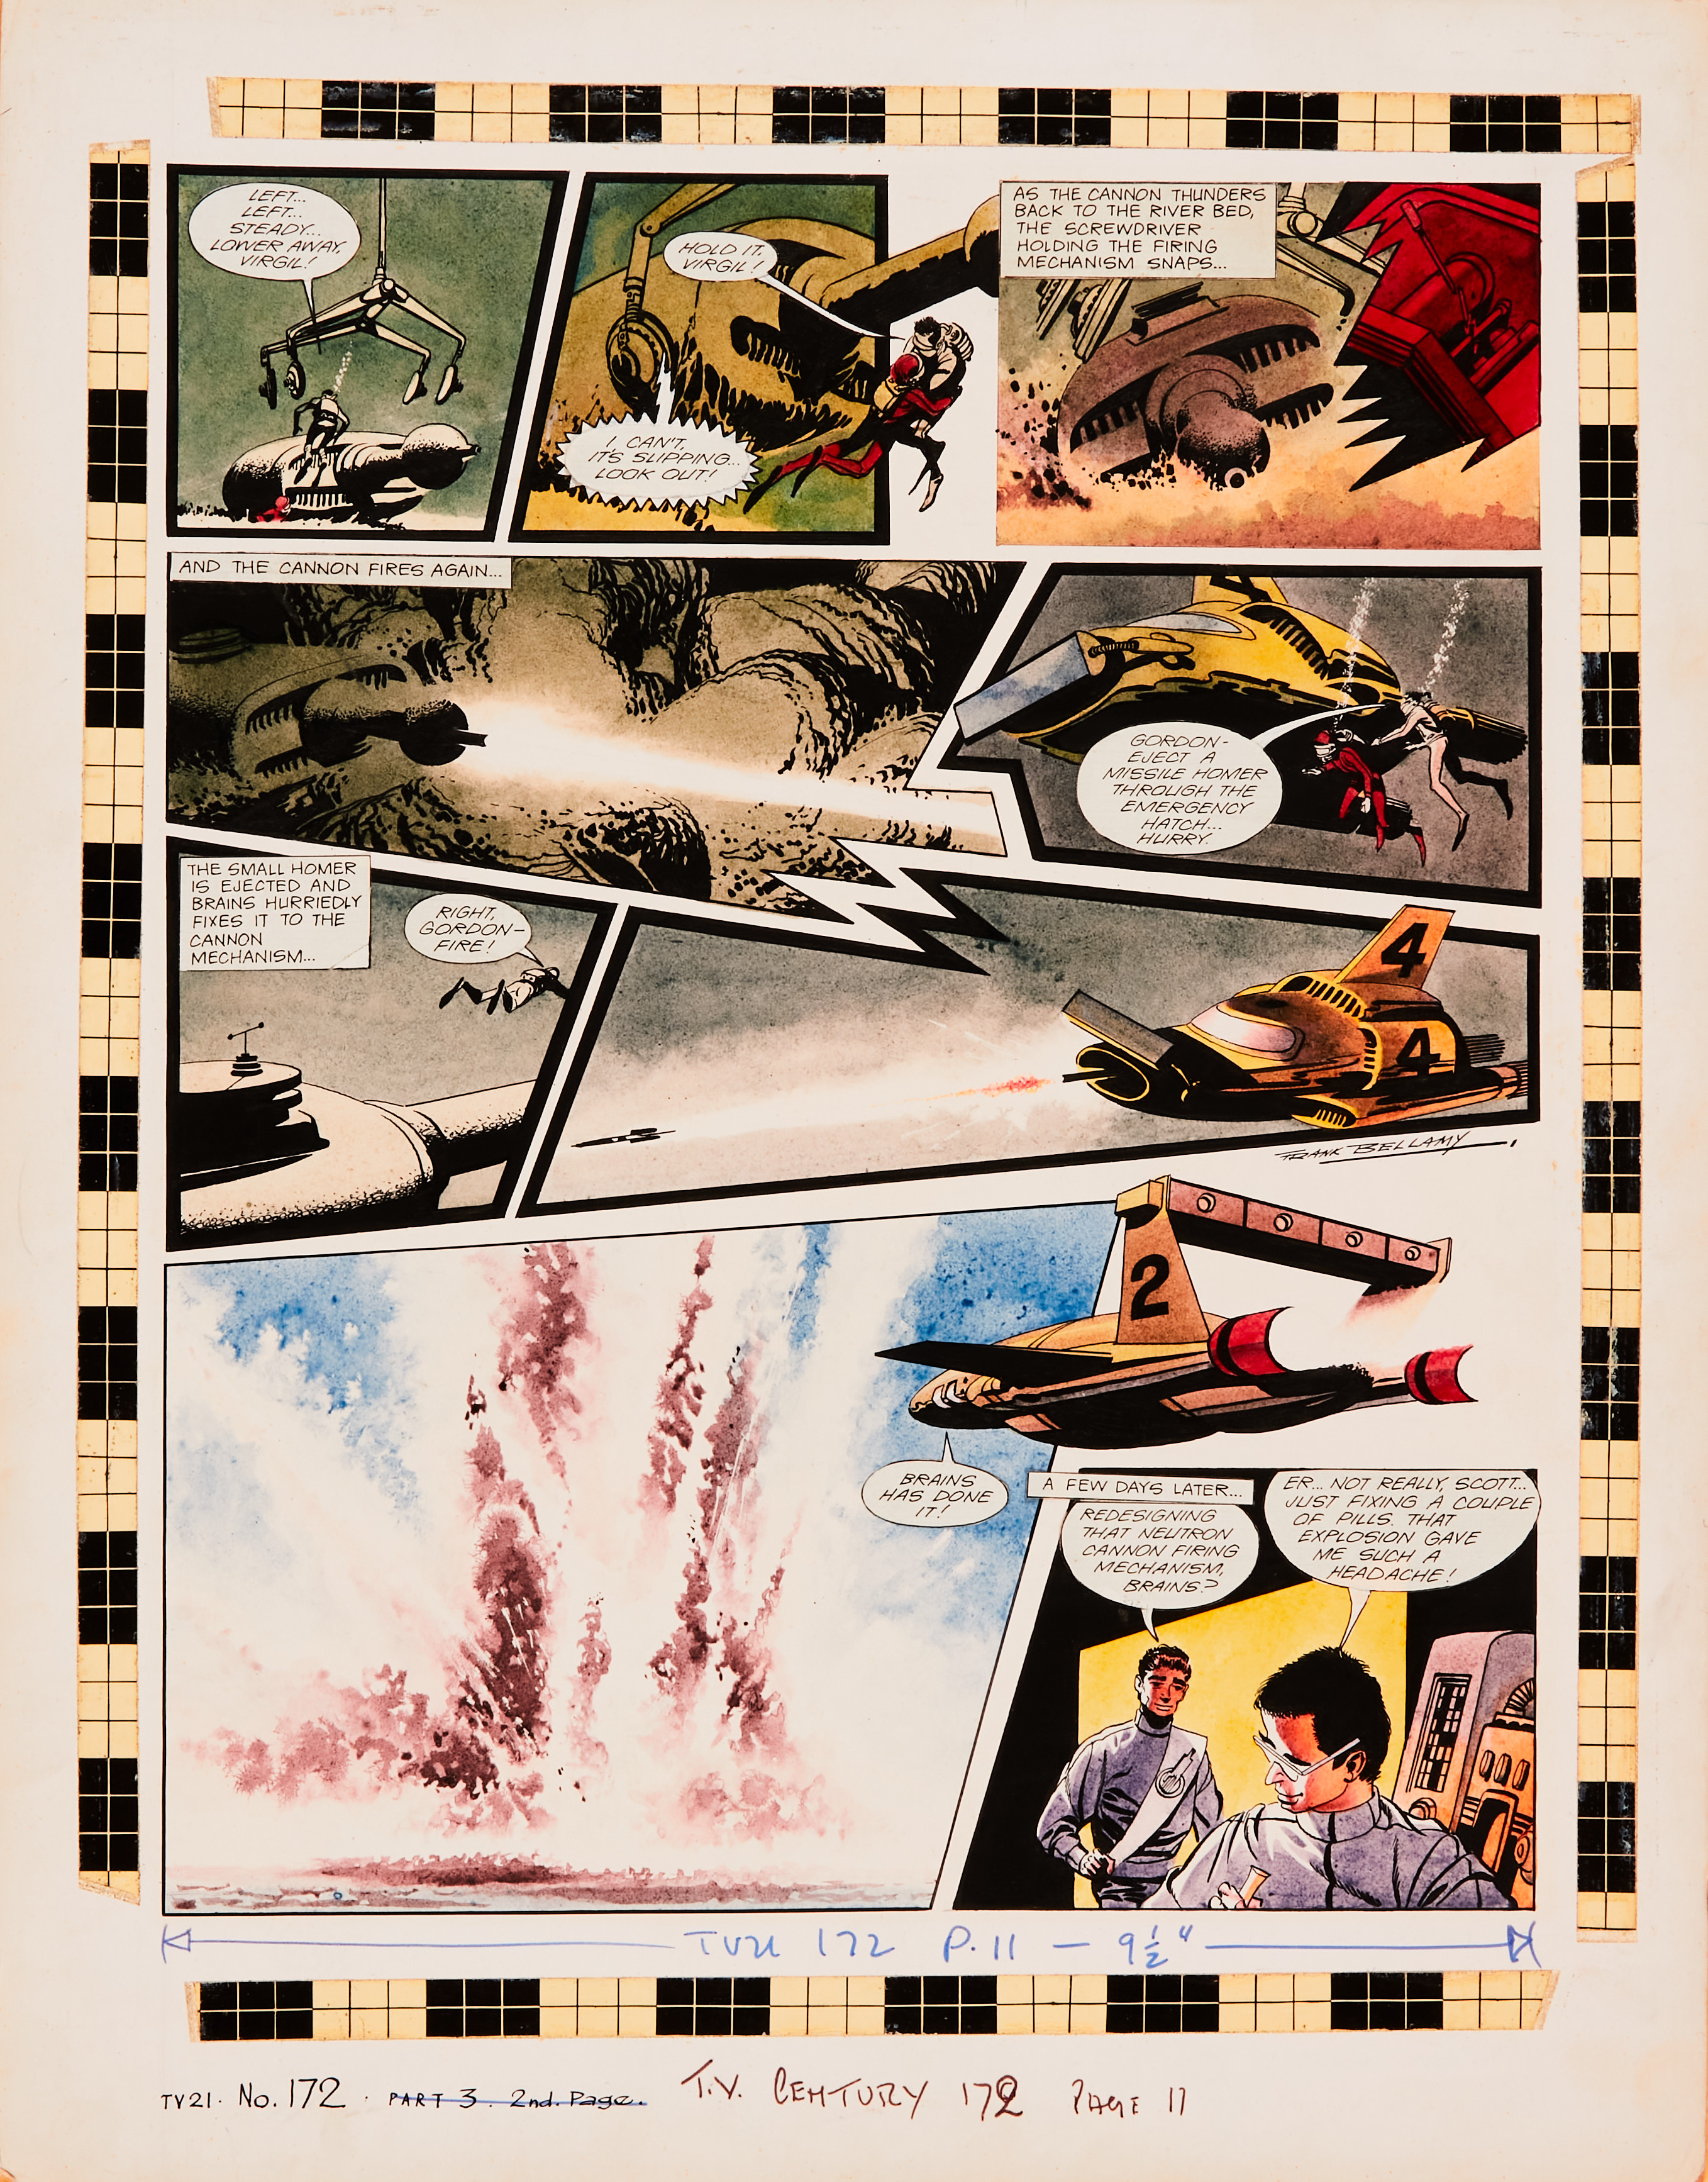 Thunderbirds original artwork (1968) drawn, painted and signed by Frank Bellamy for TV Century 21 No